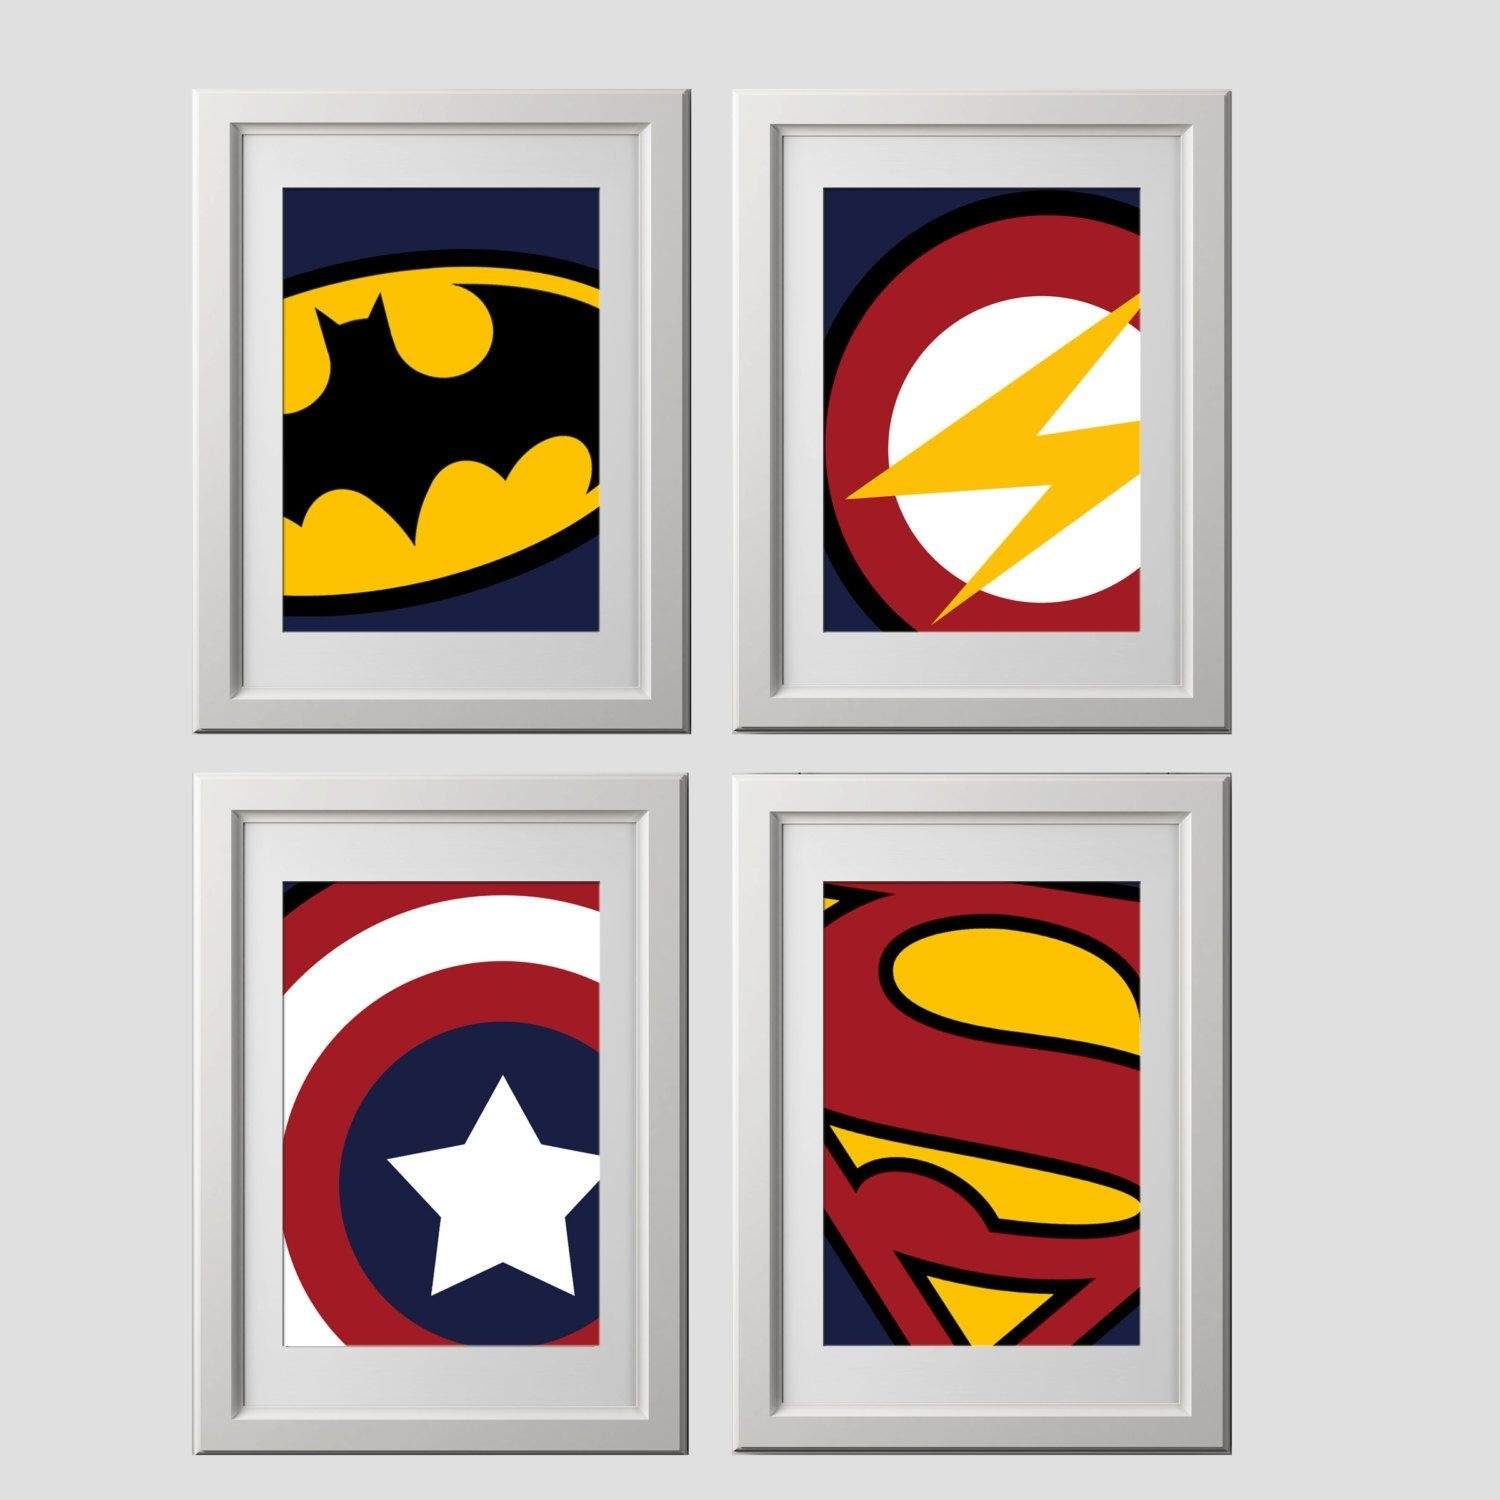 Superhero Wall Art Prints, Super Hero Wall Art Prints, High Quality Within Latest Superhero Wall Art (View 14 of 20)